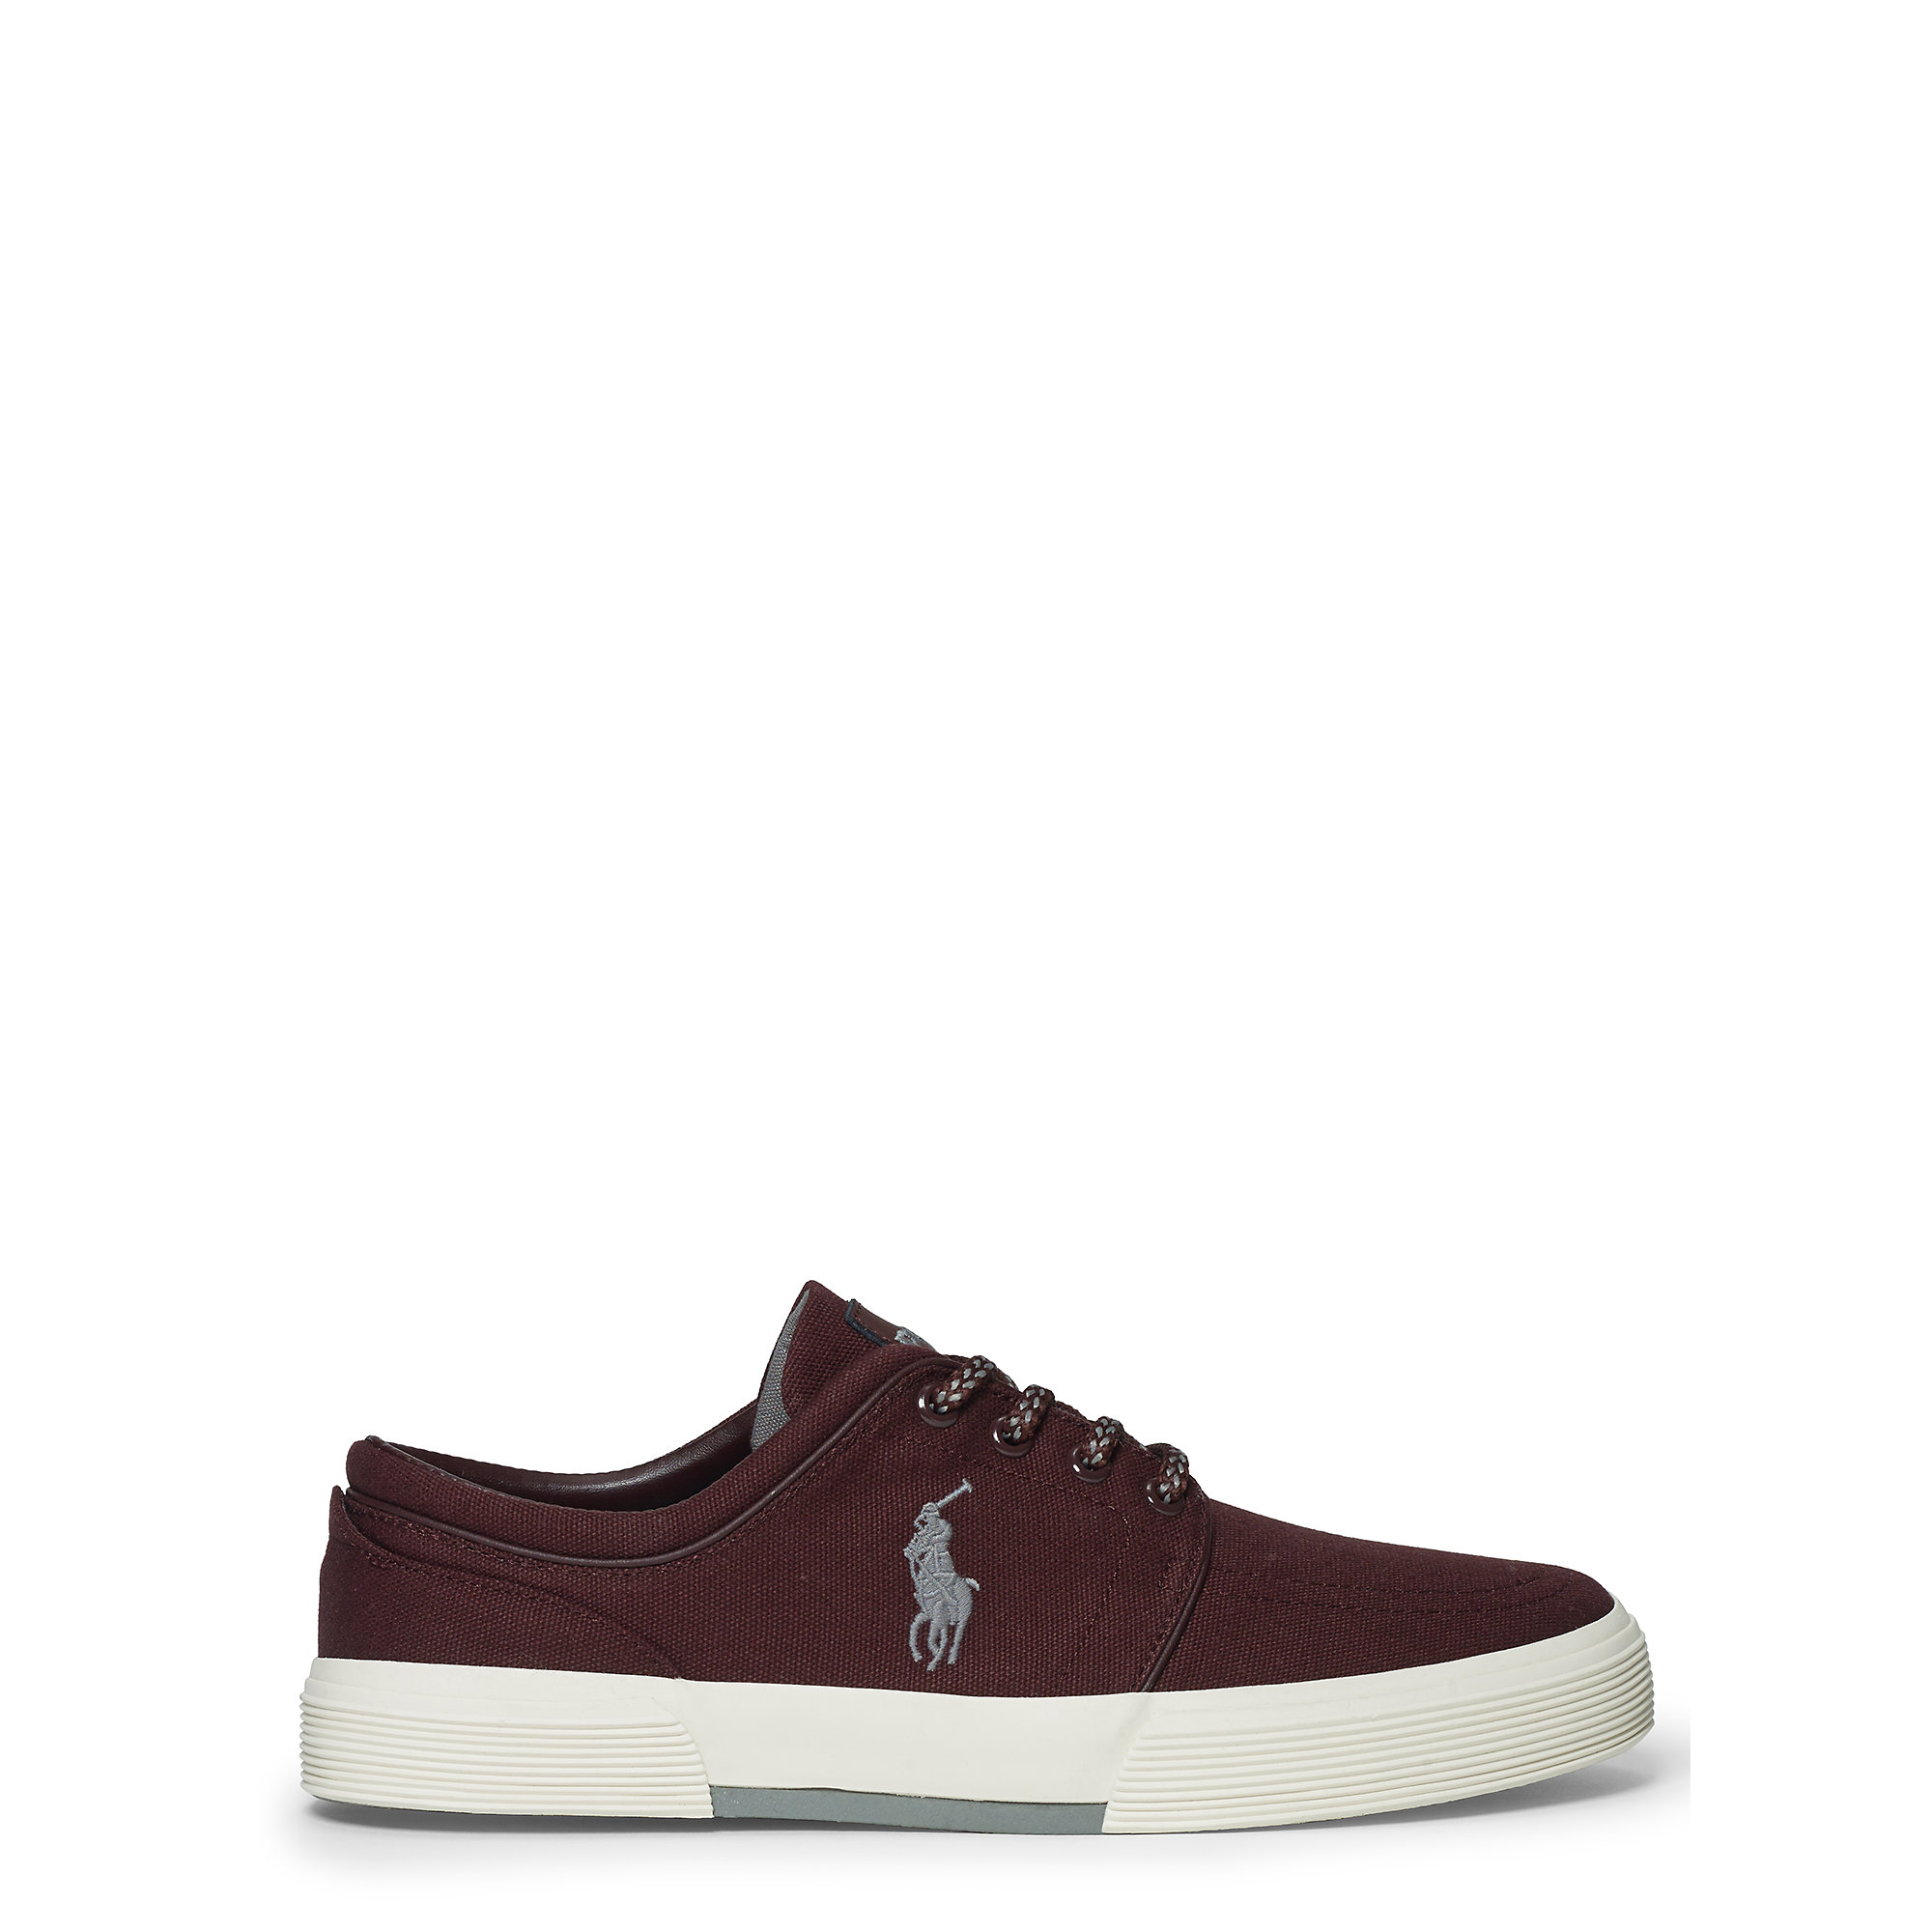 polo ralph lauren faxon canvas low sneaker in brown for men redwood lyst. Black Bedroom Furniture Sets. Home Design Ideas